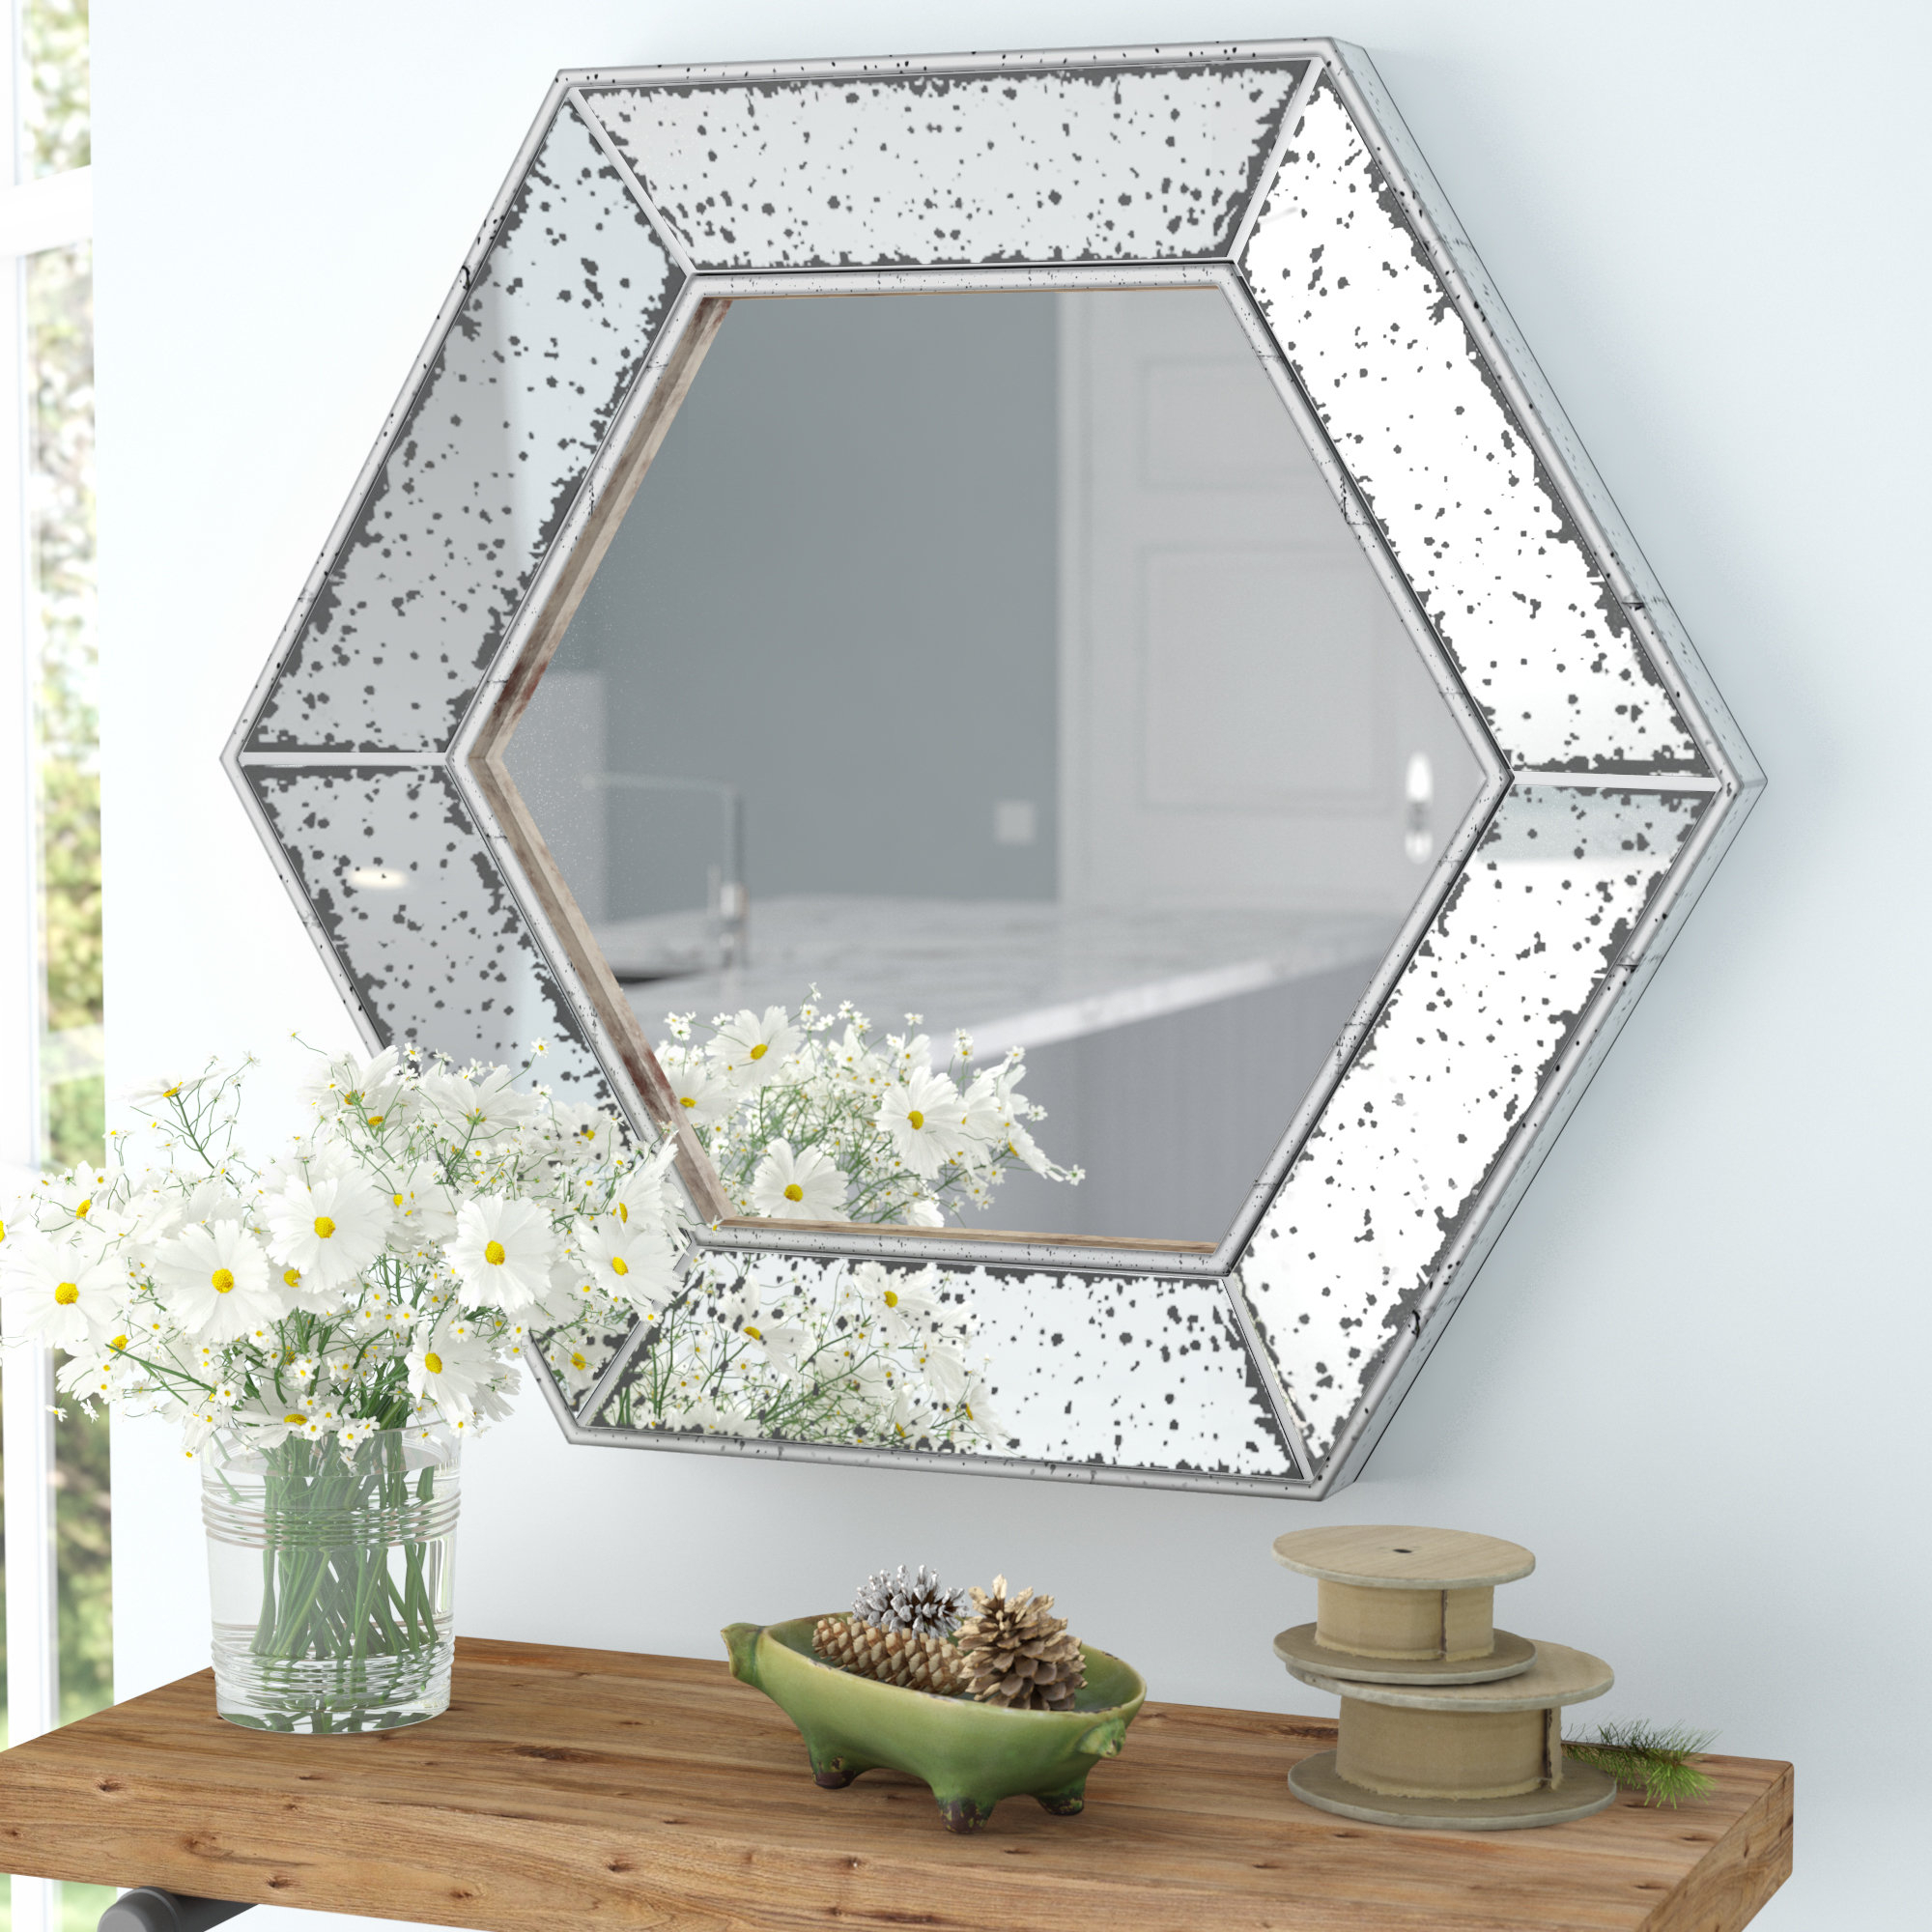 Gia Hexagon Accent Mirrors For Well Known Gia Hexagon Accent Mirror (View 1 of 20)